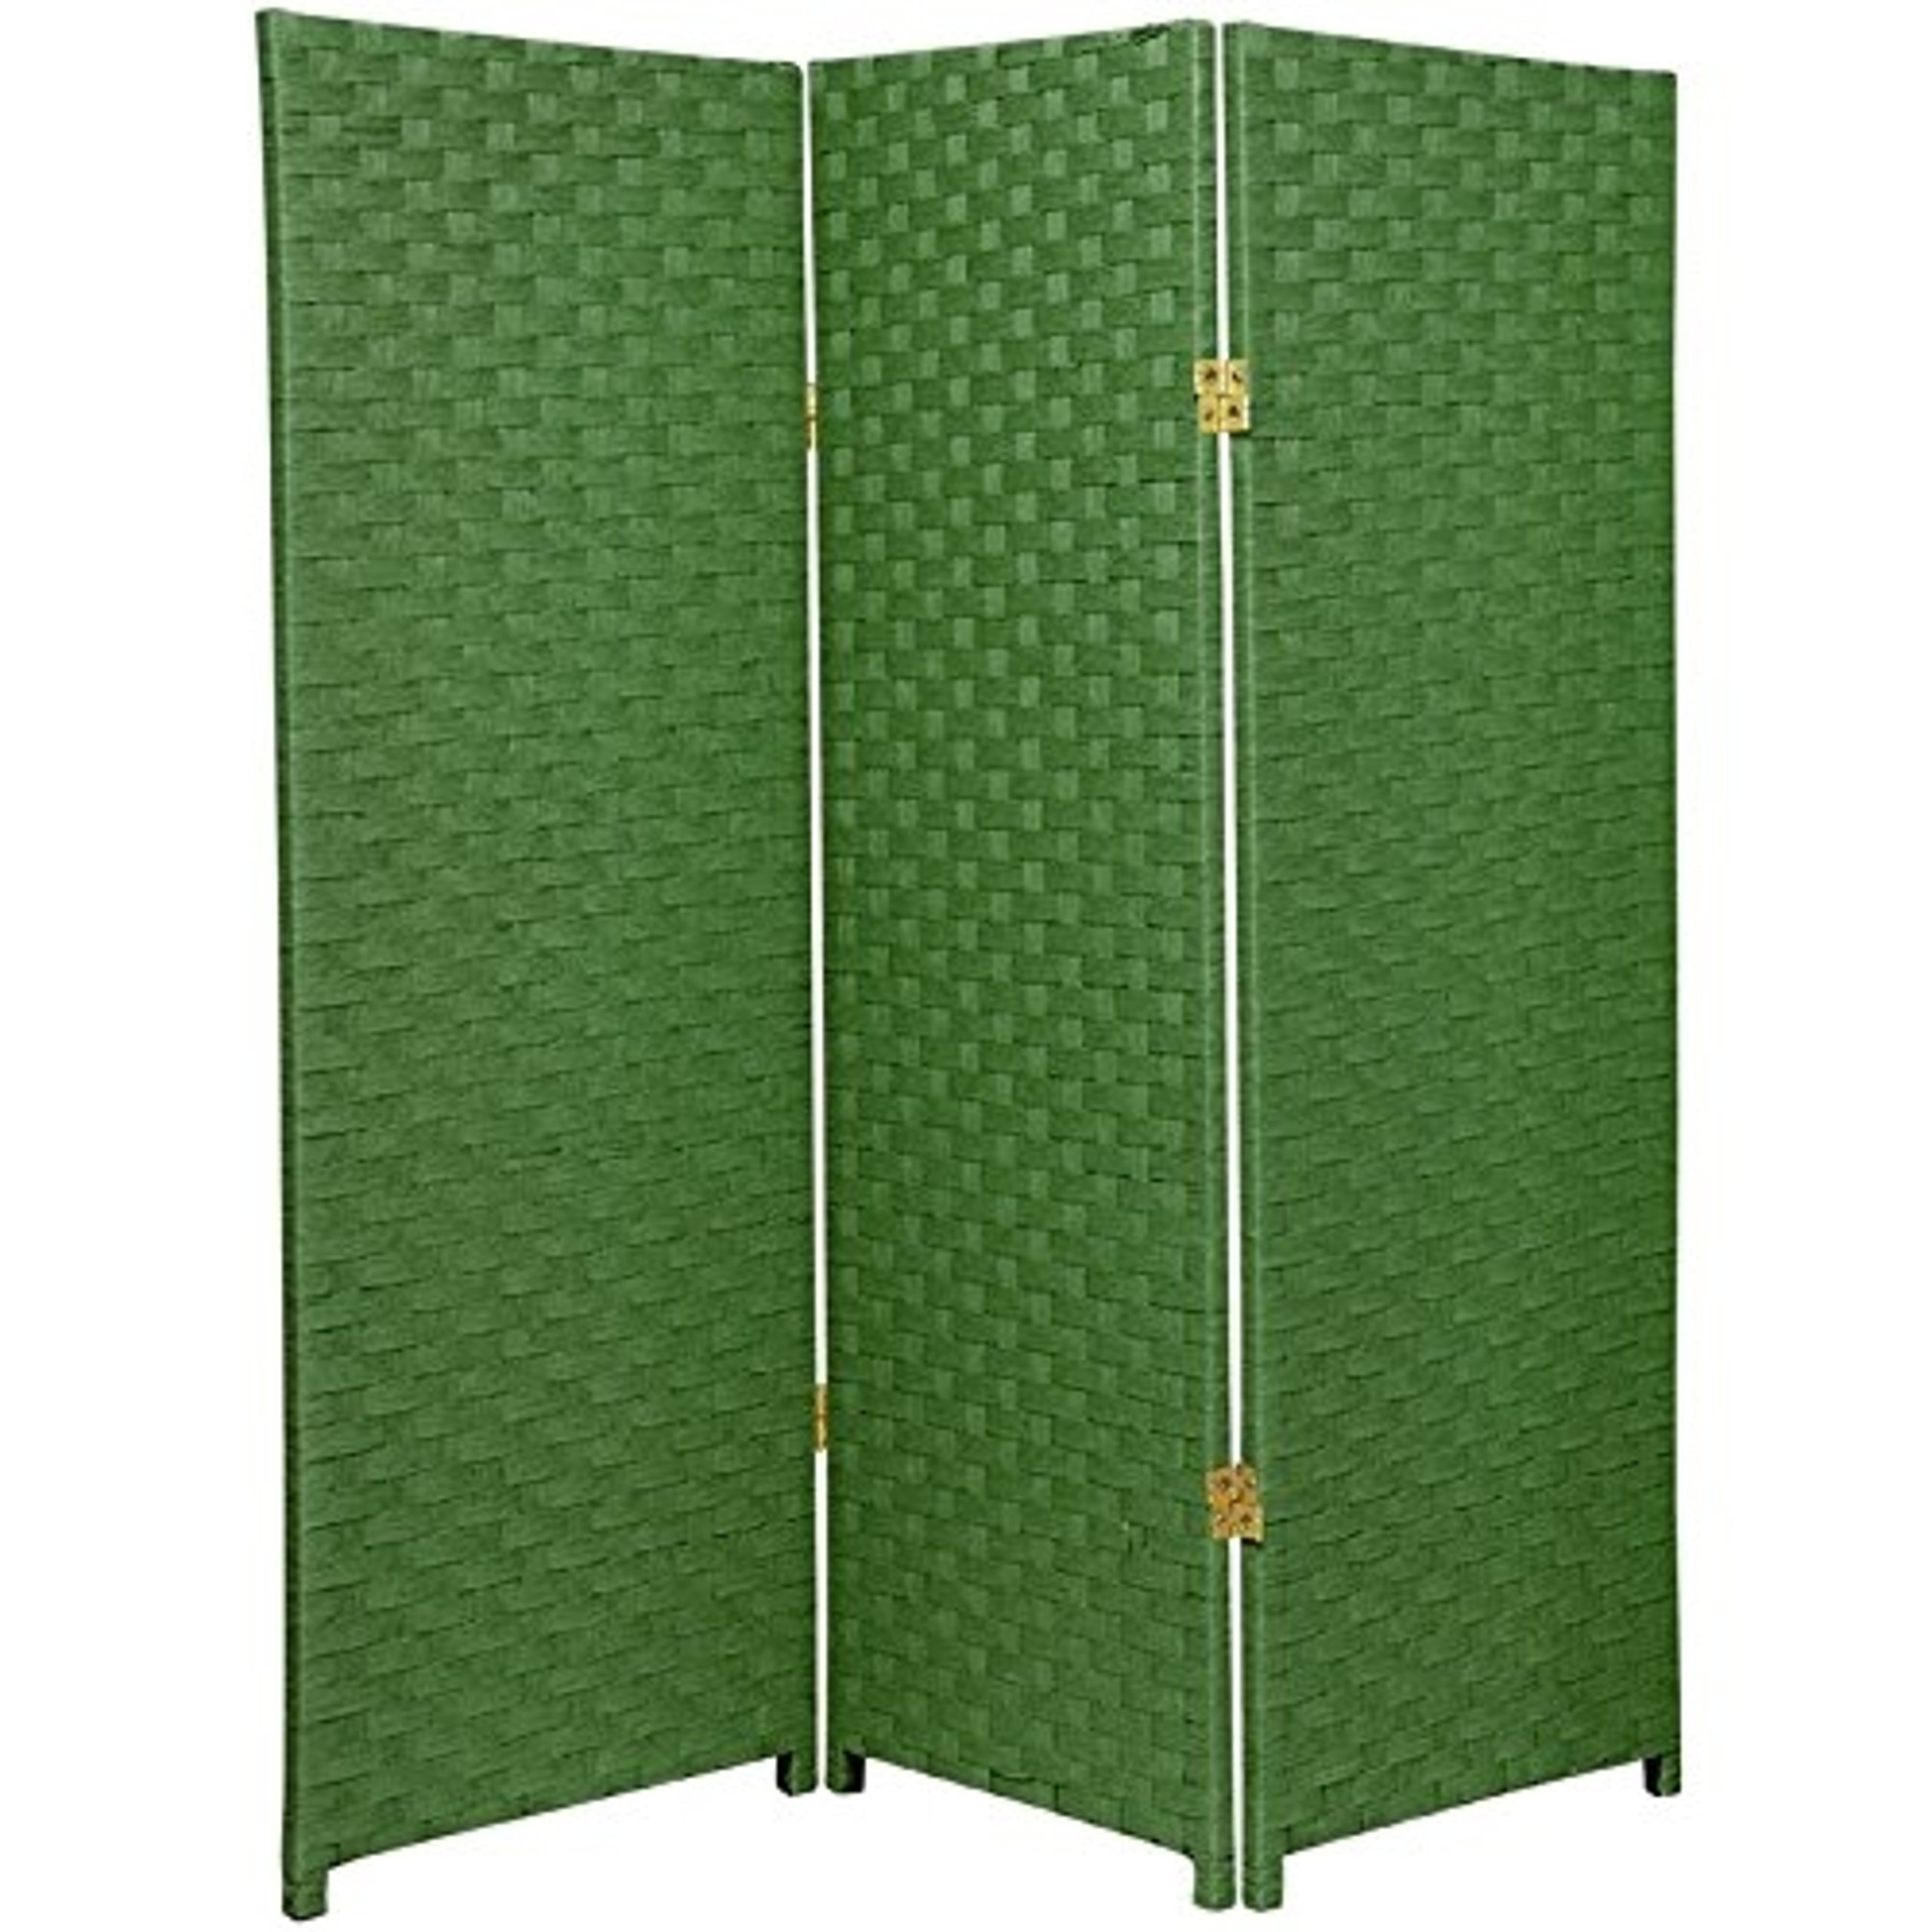 Natural Plant Fiber Woven Room Decor Light Green 3 Panels Divider by Roman Shade Unlimited